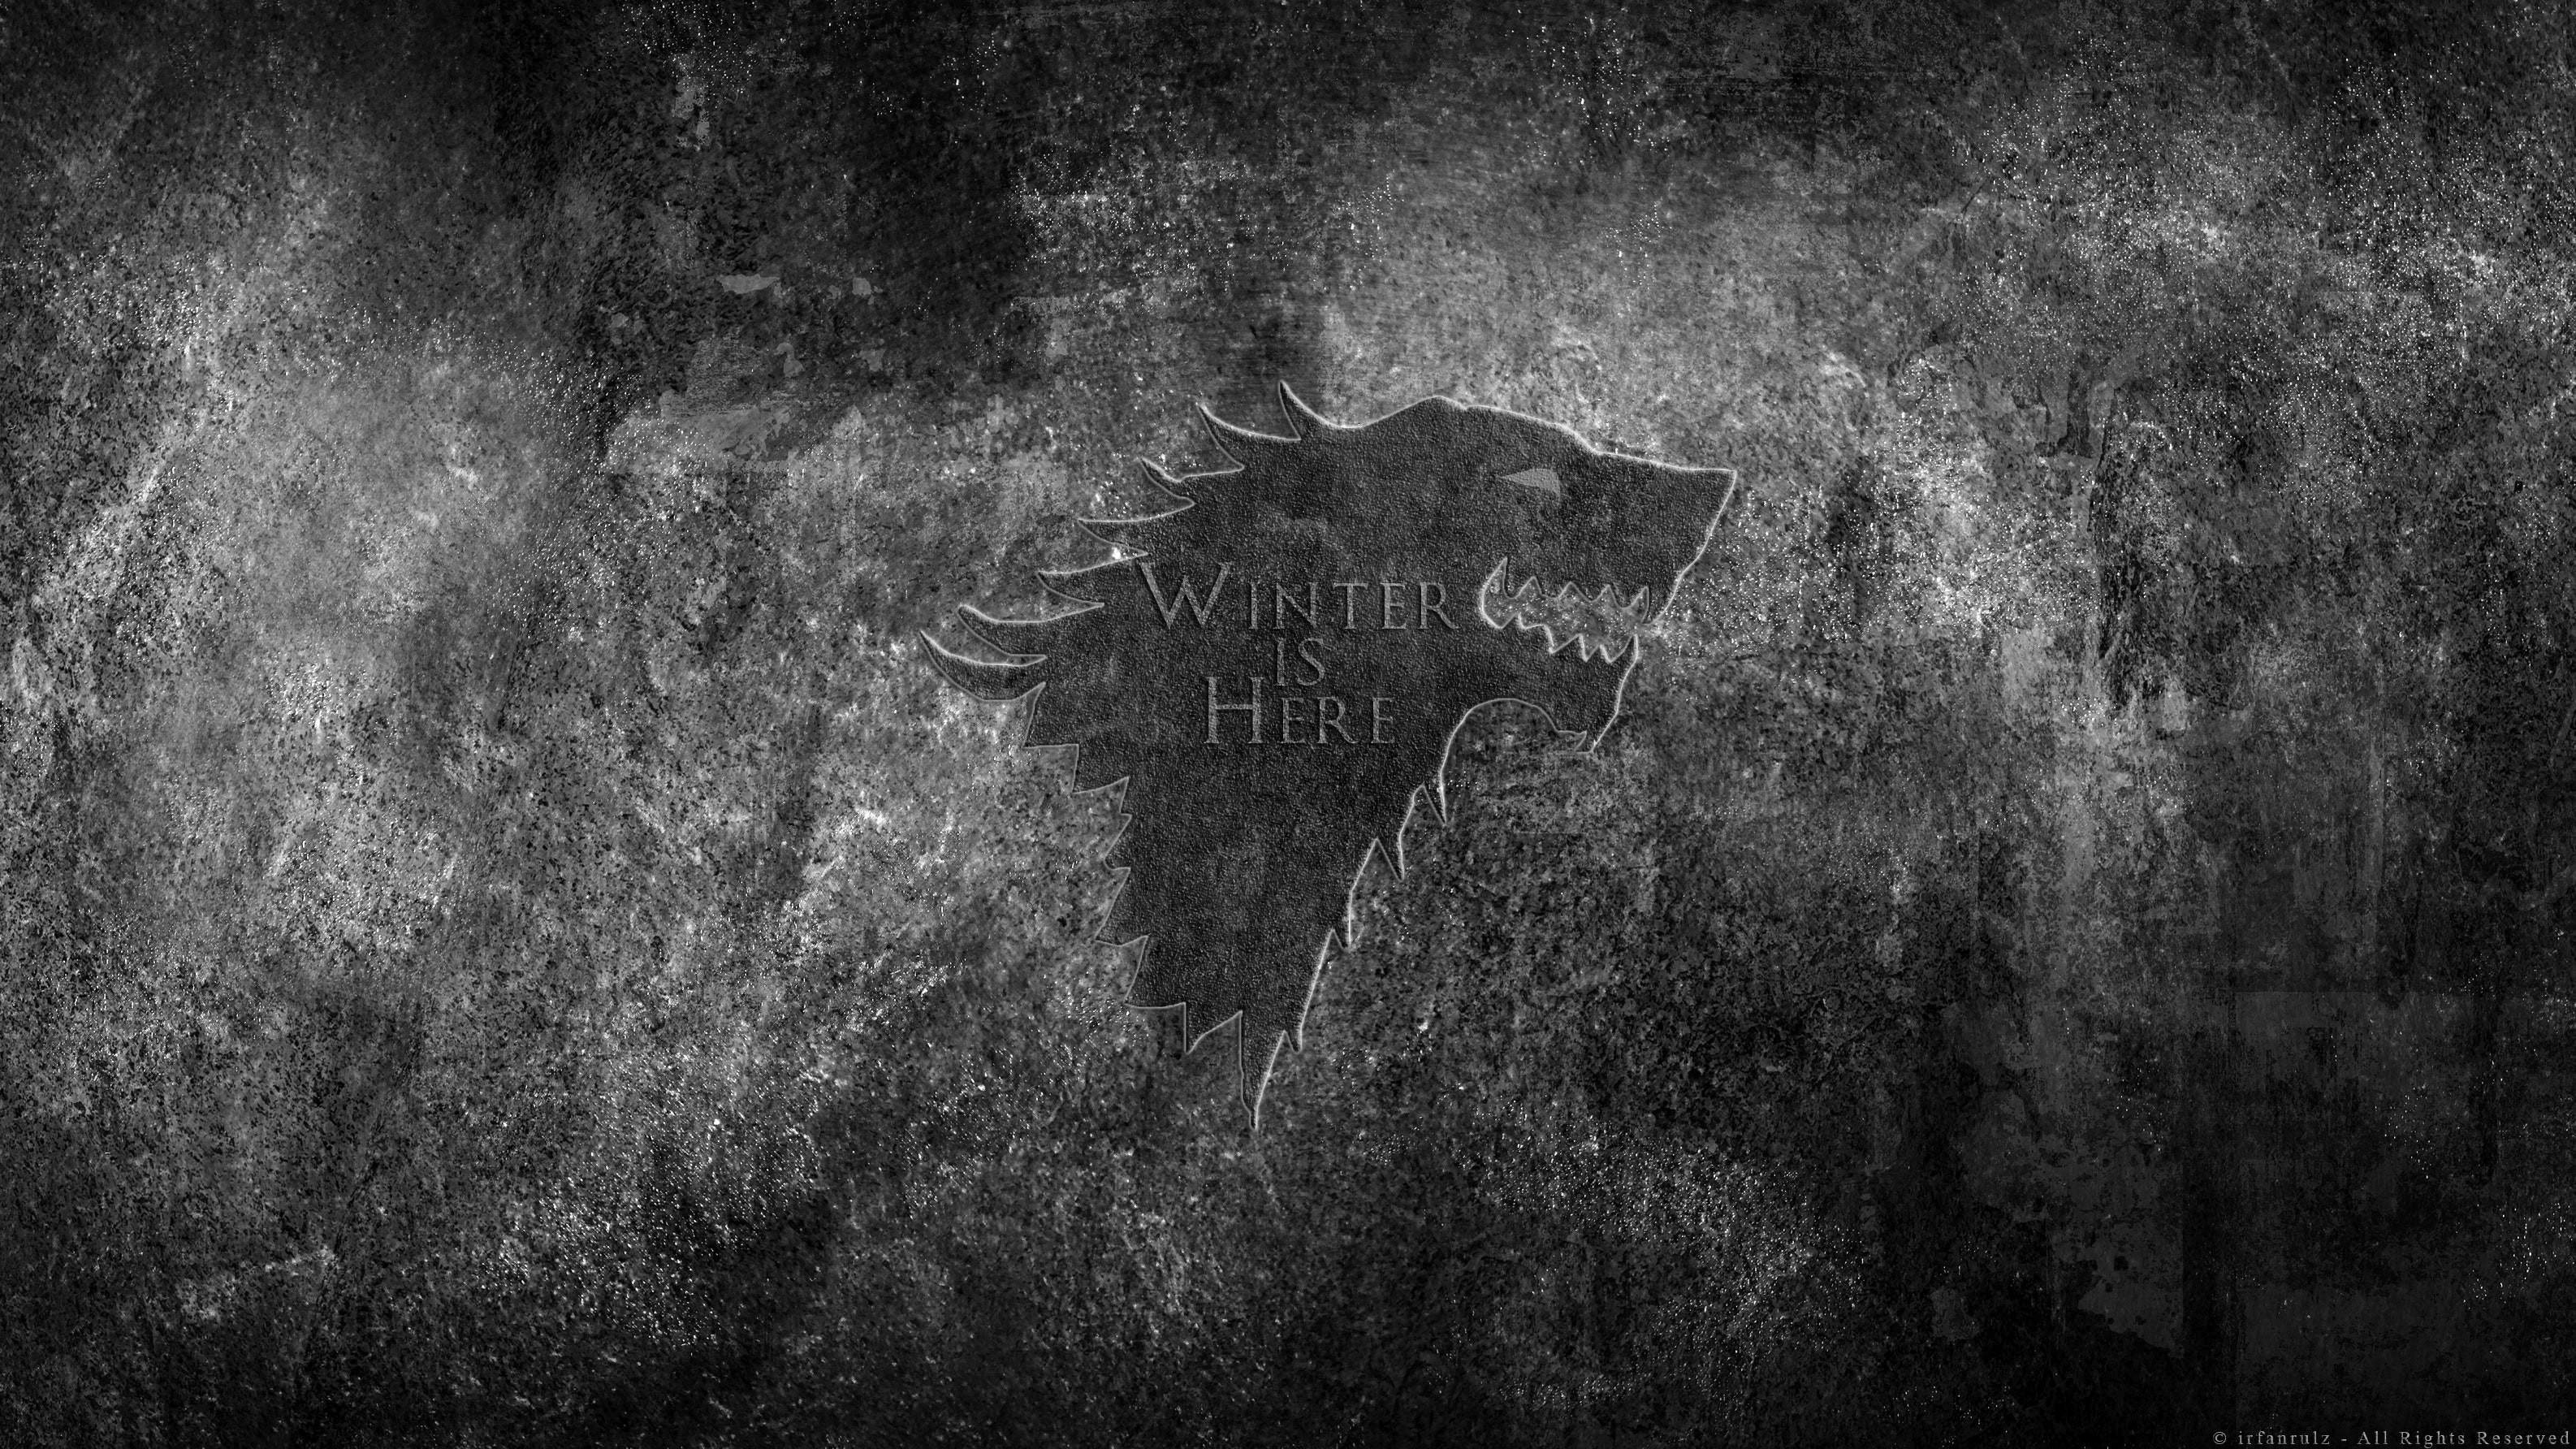 Game of Thrones: Death and Meaning - A Philosopher's Stone - Medium